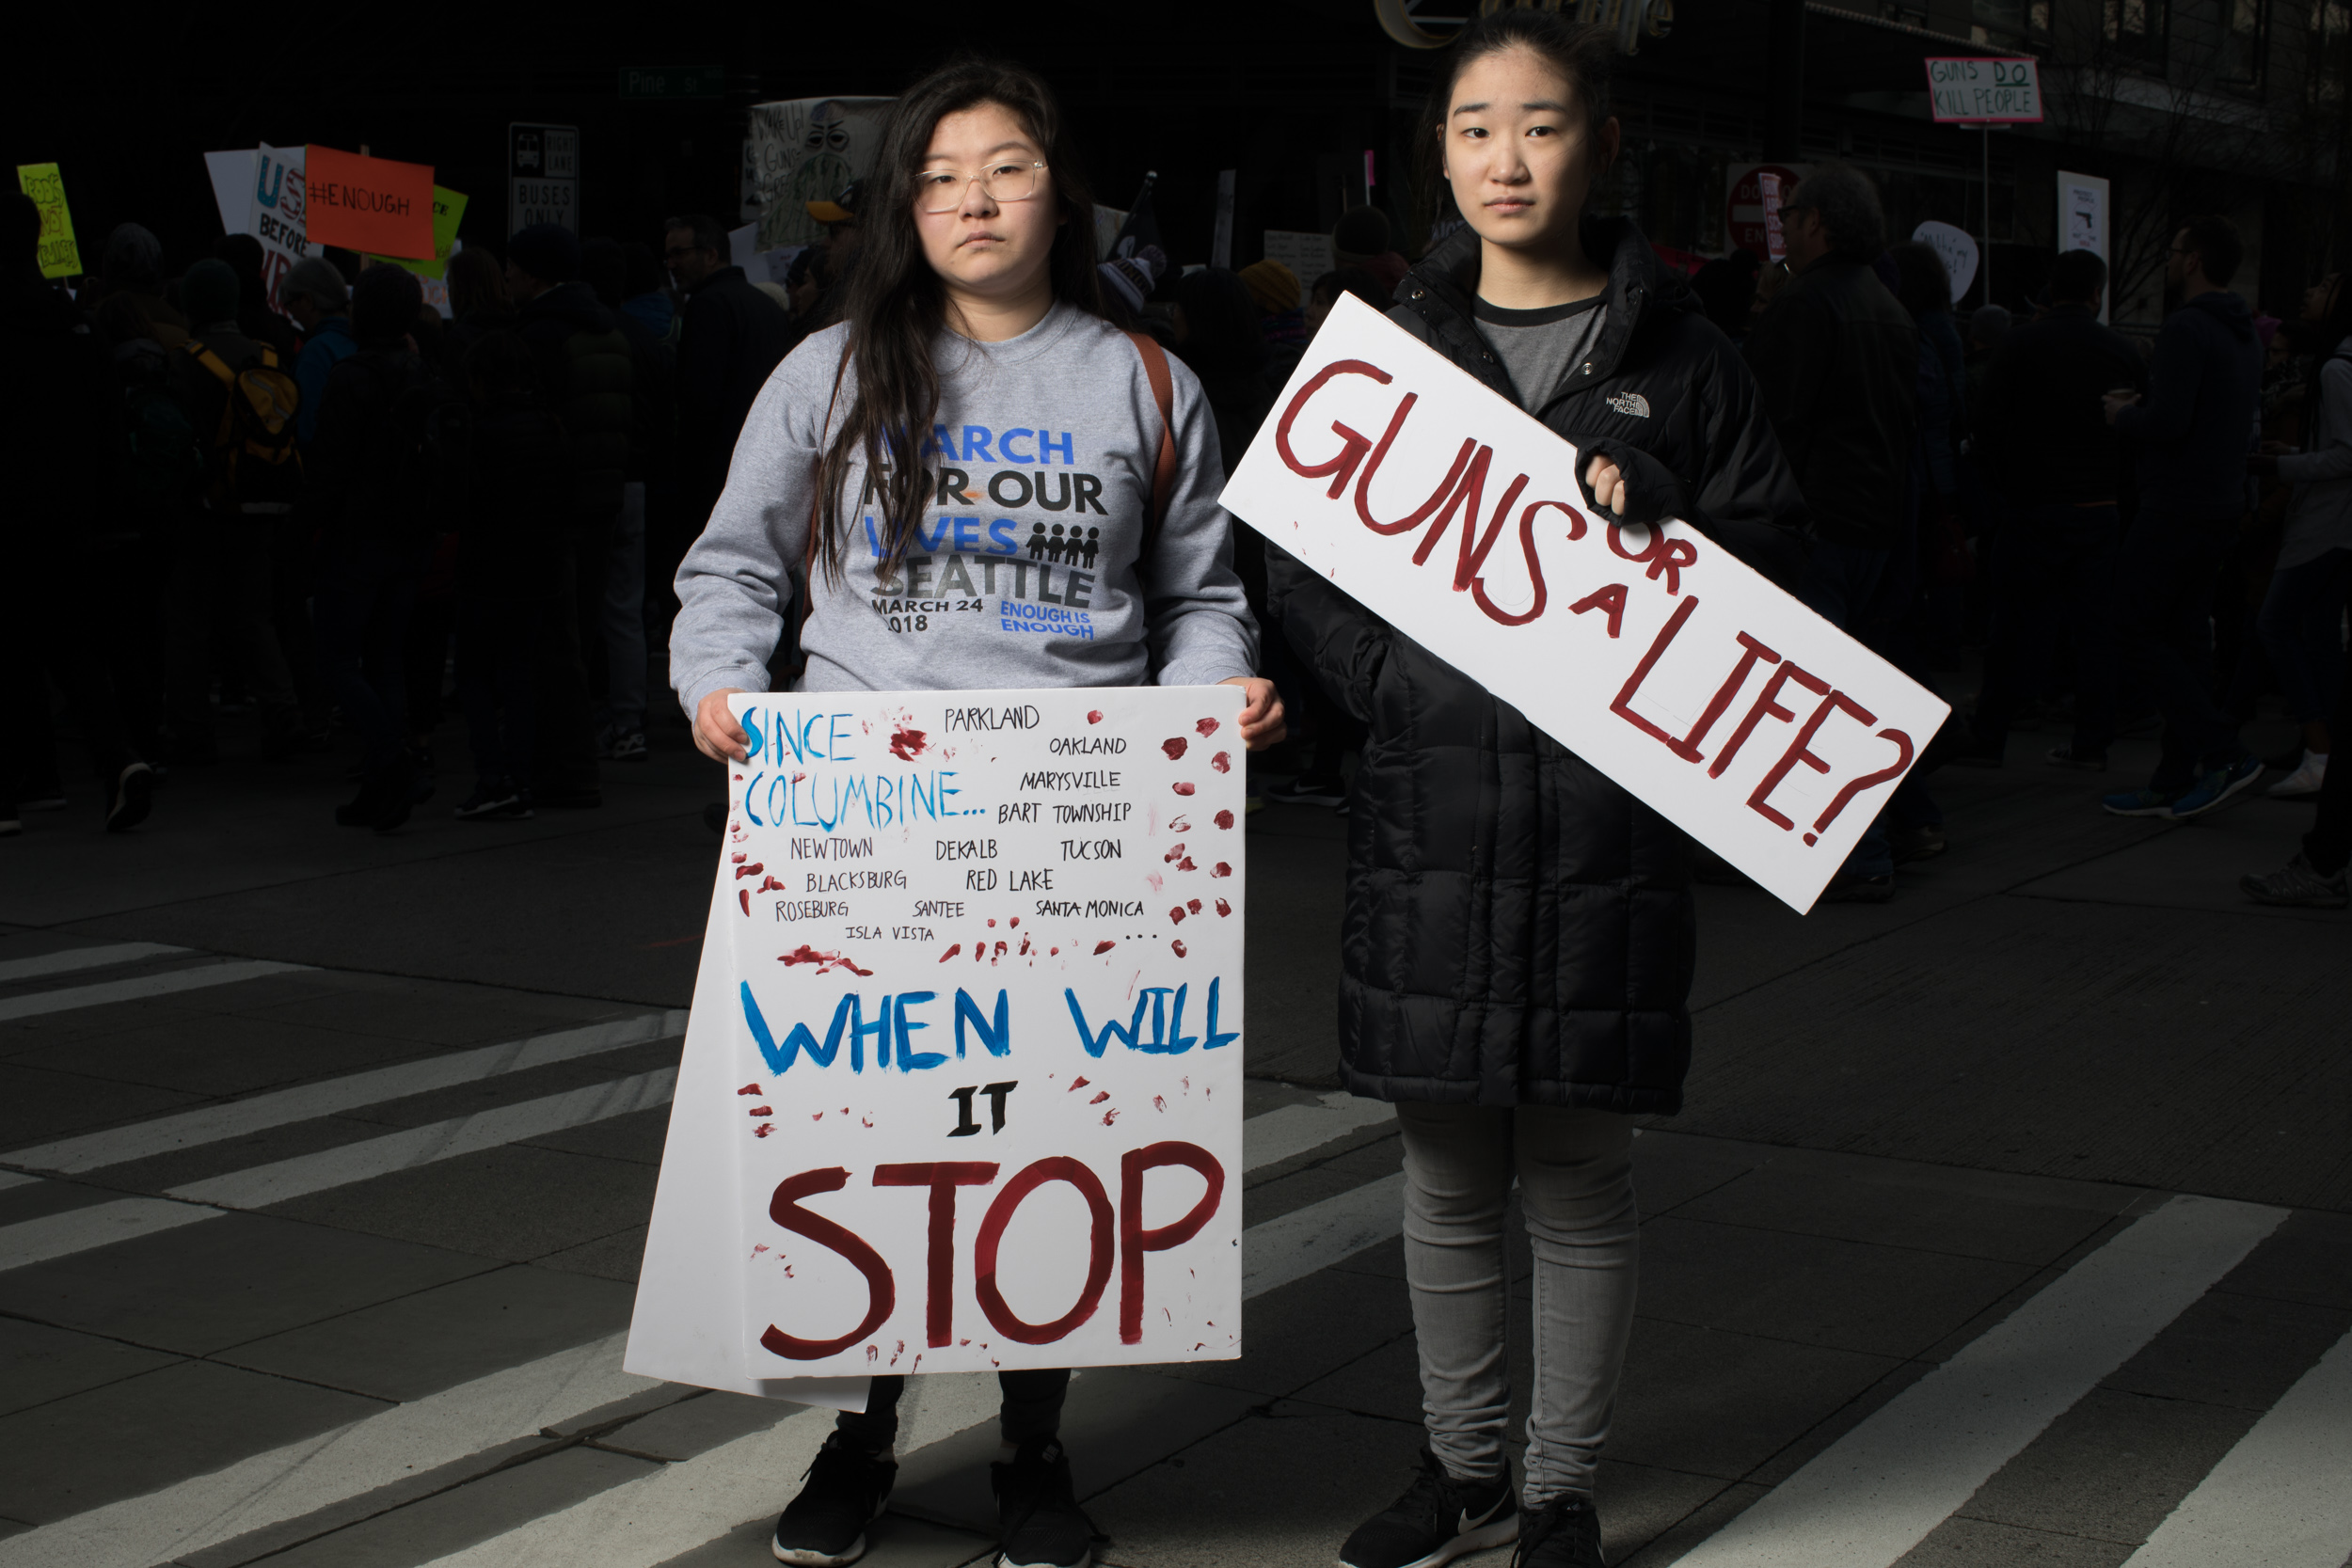 Deborah Kwon, 16, and Kaylin Jeon, 17, both of Bellevue